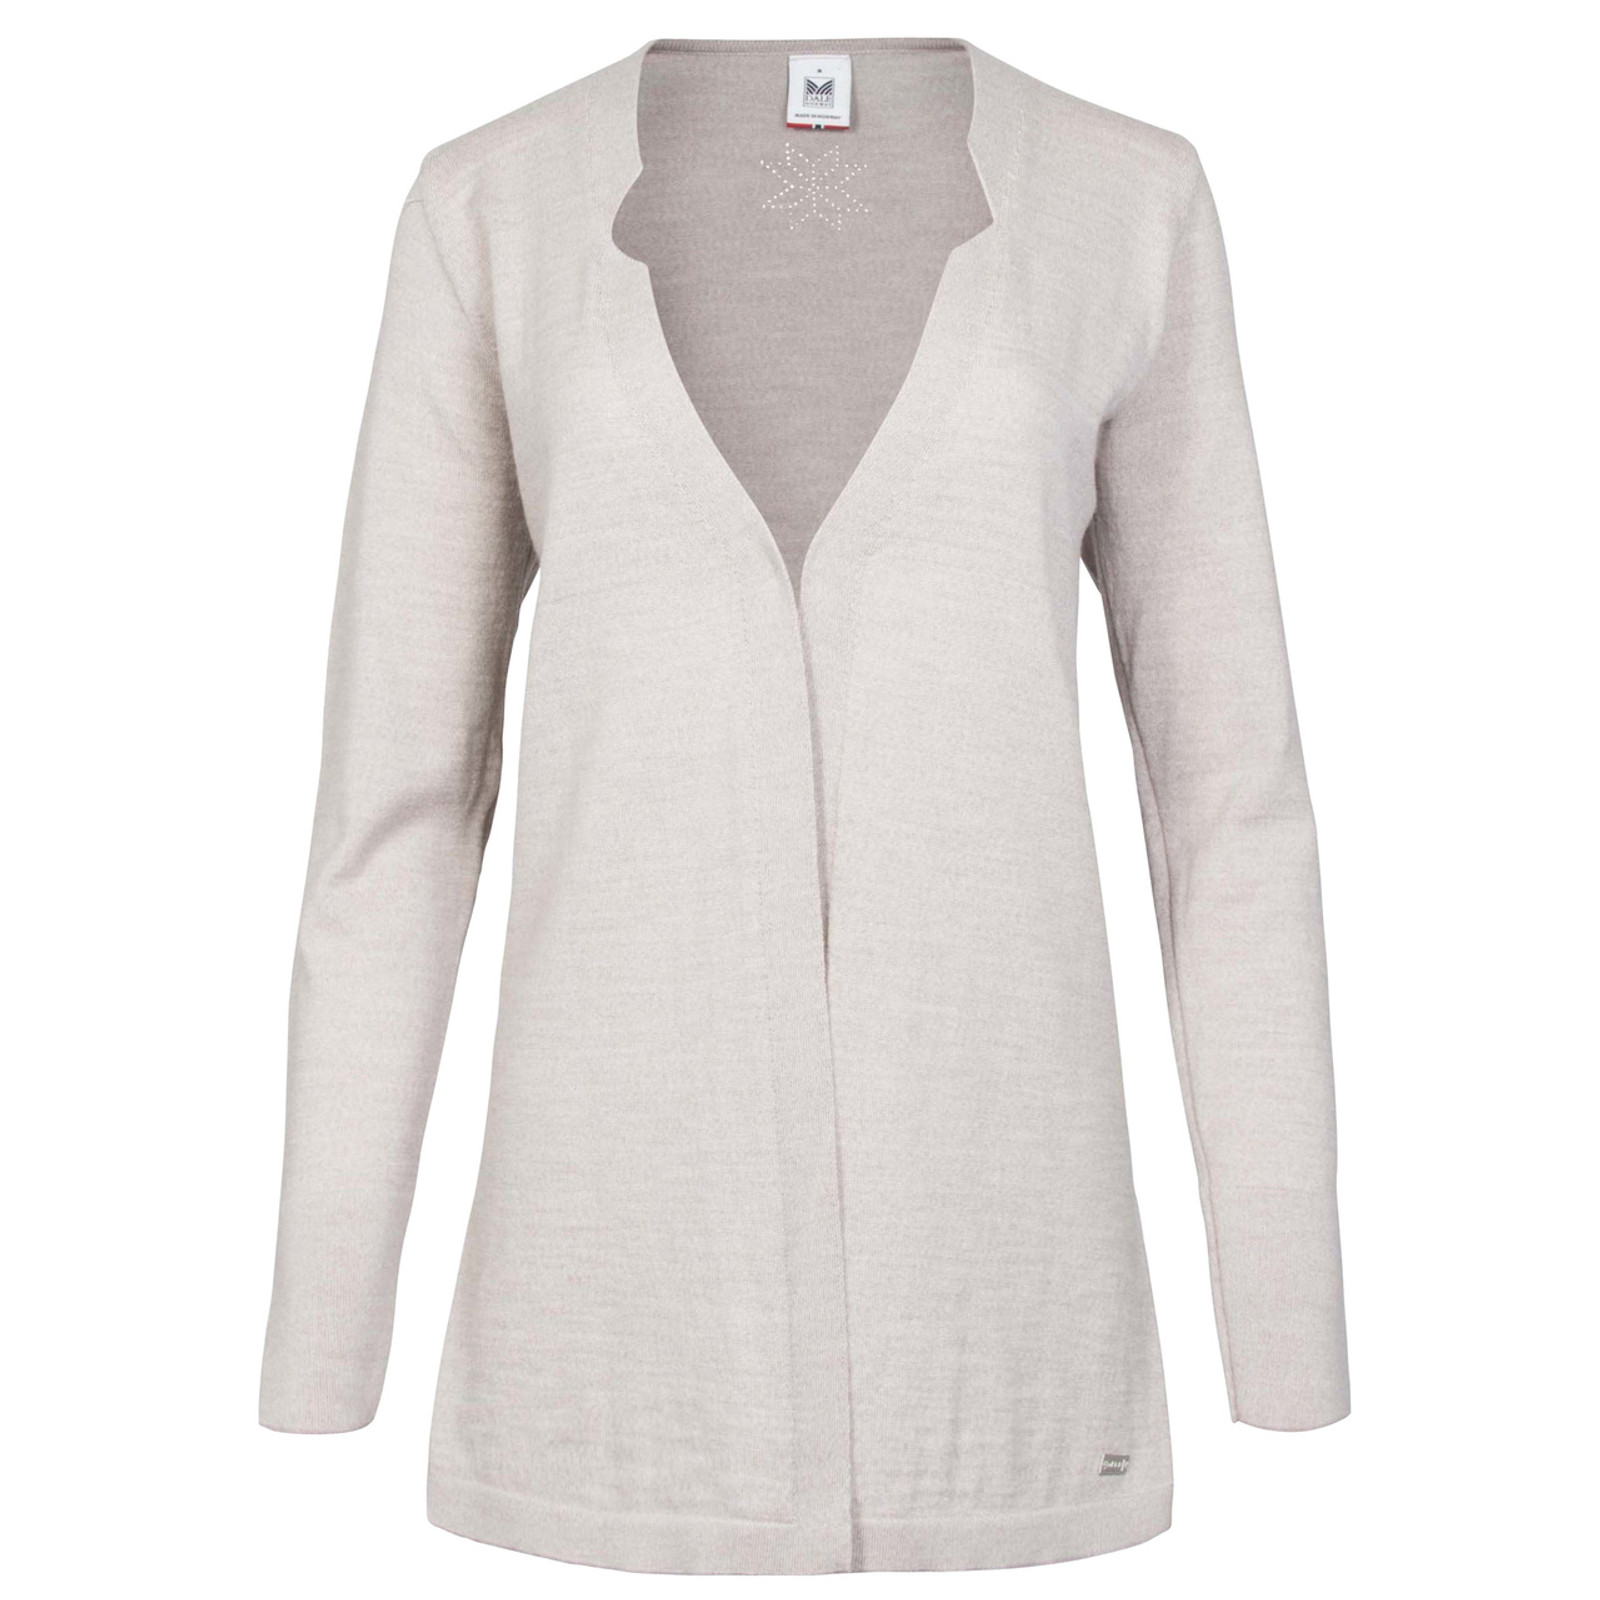 Dale of Norway, Marie cardigan, ladies, Sand. 83351-P, on sale at The Nordic Shop